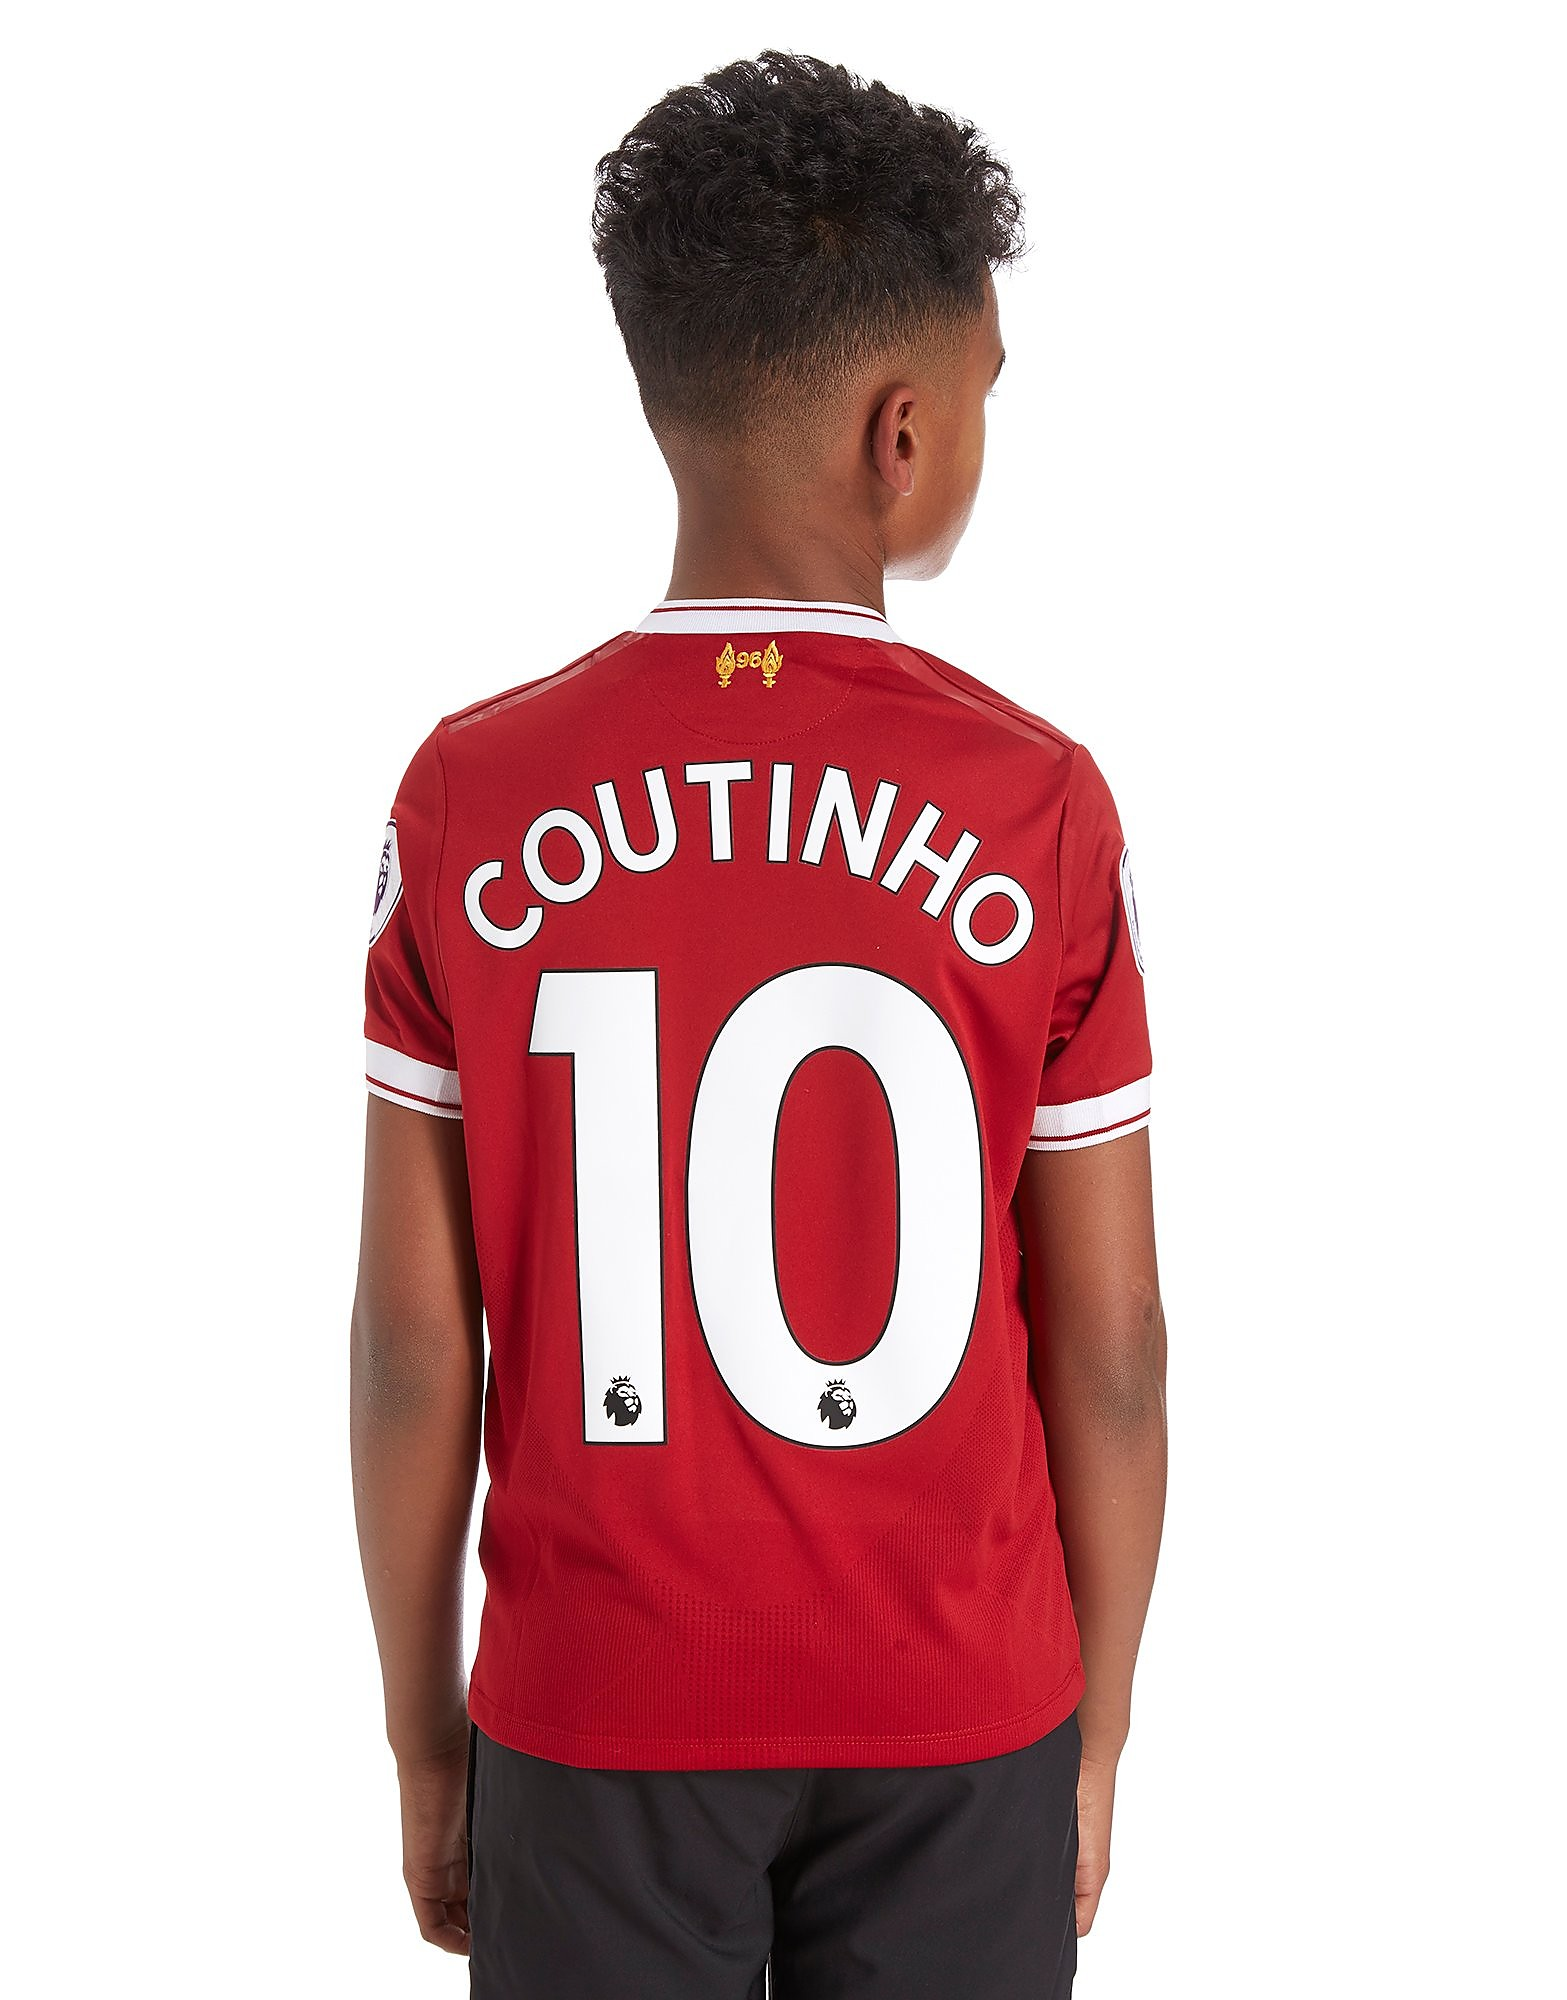 New Balance Liverpool FC Coutinho #10 Home 17/18 Shirt Junior